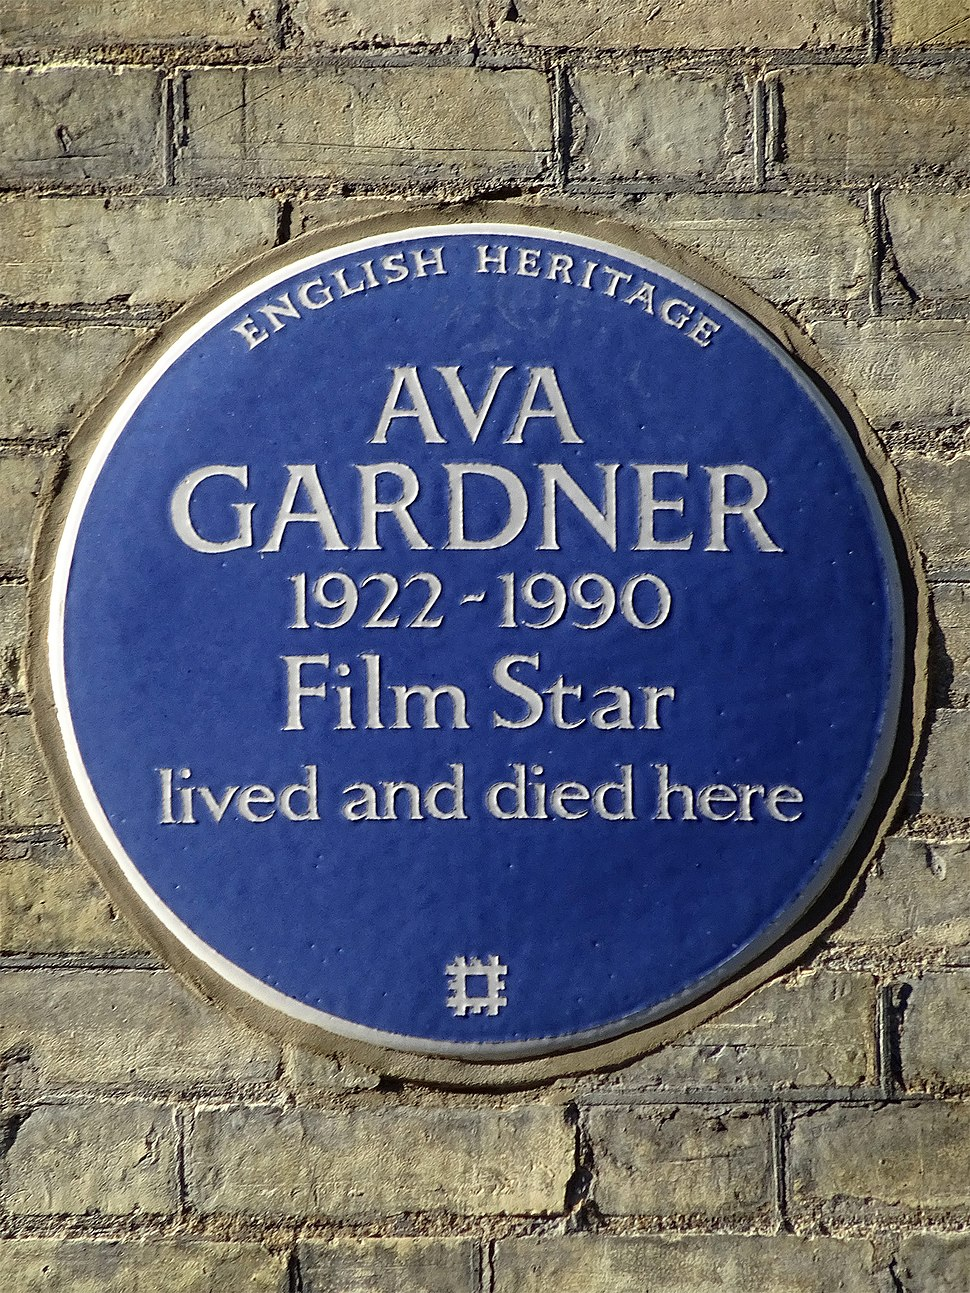 AVA GARDNER 1922-1990 Film Star lived and died here